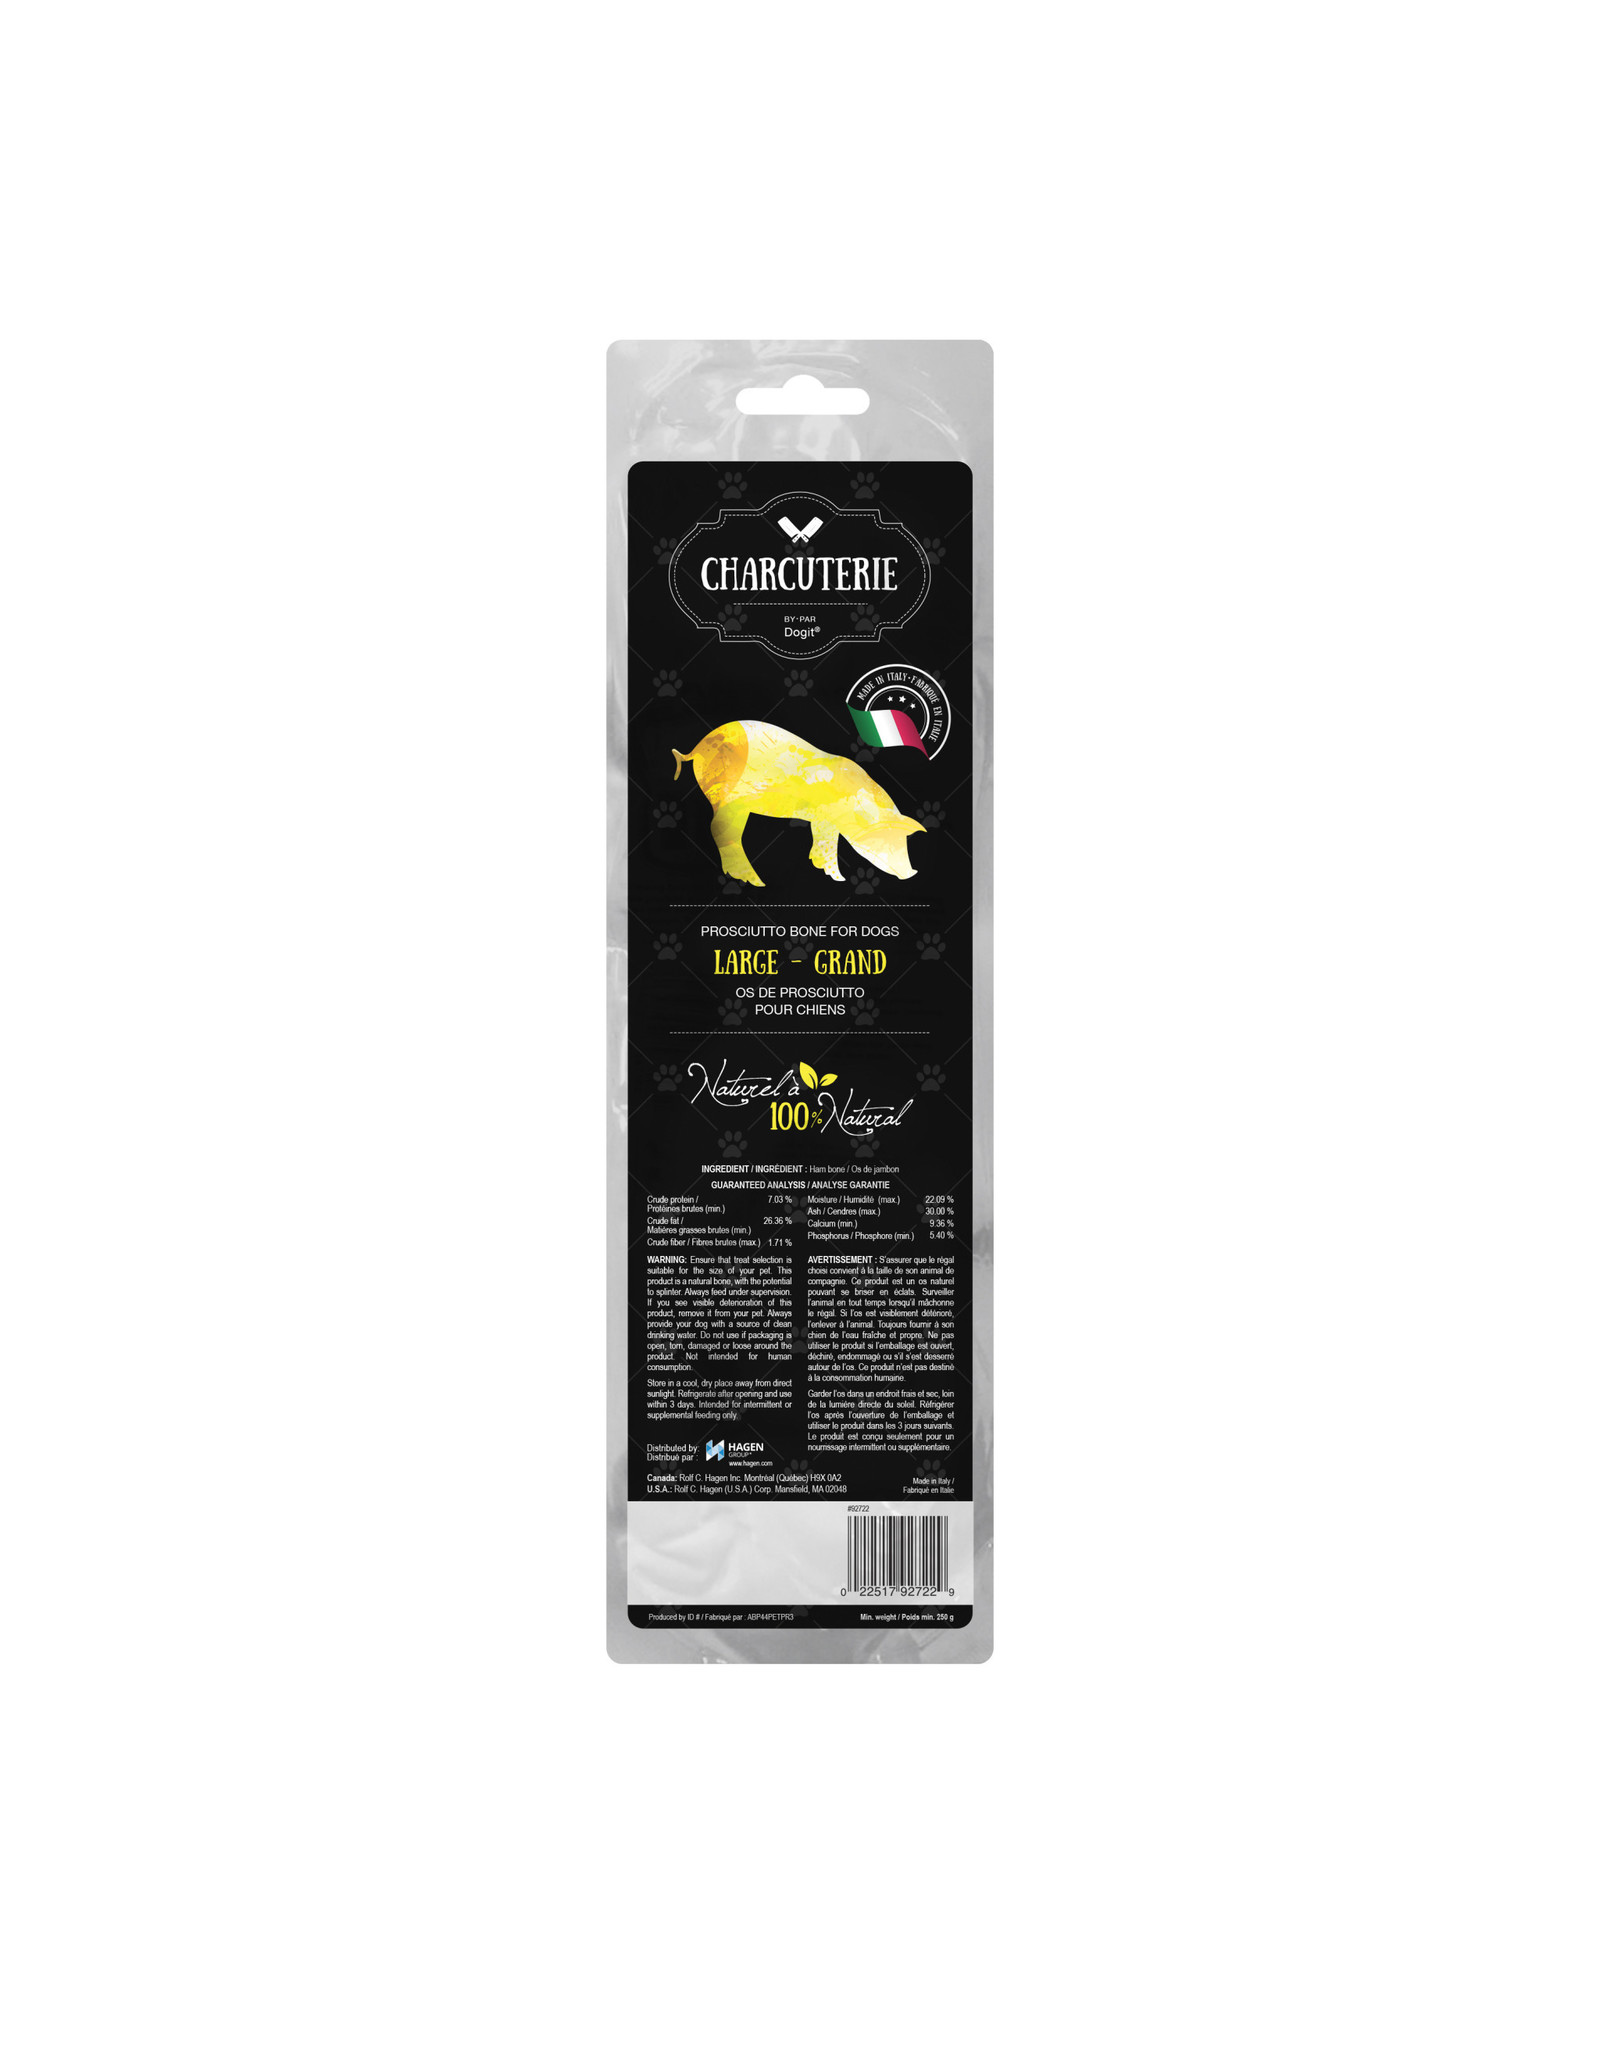 DO - Dogit Charcuterie by Dogit Prosciutto Bone for Dogs